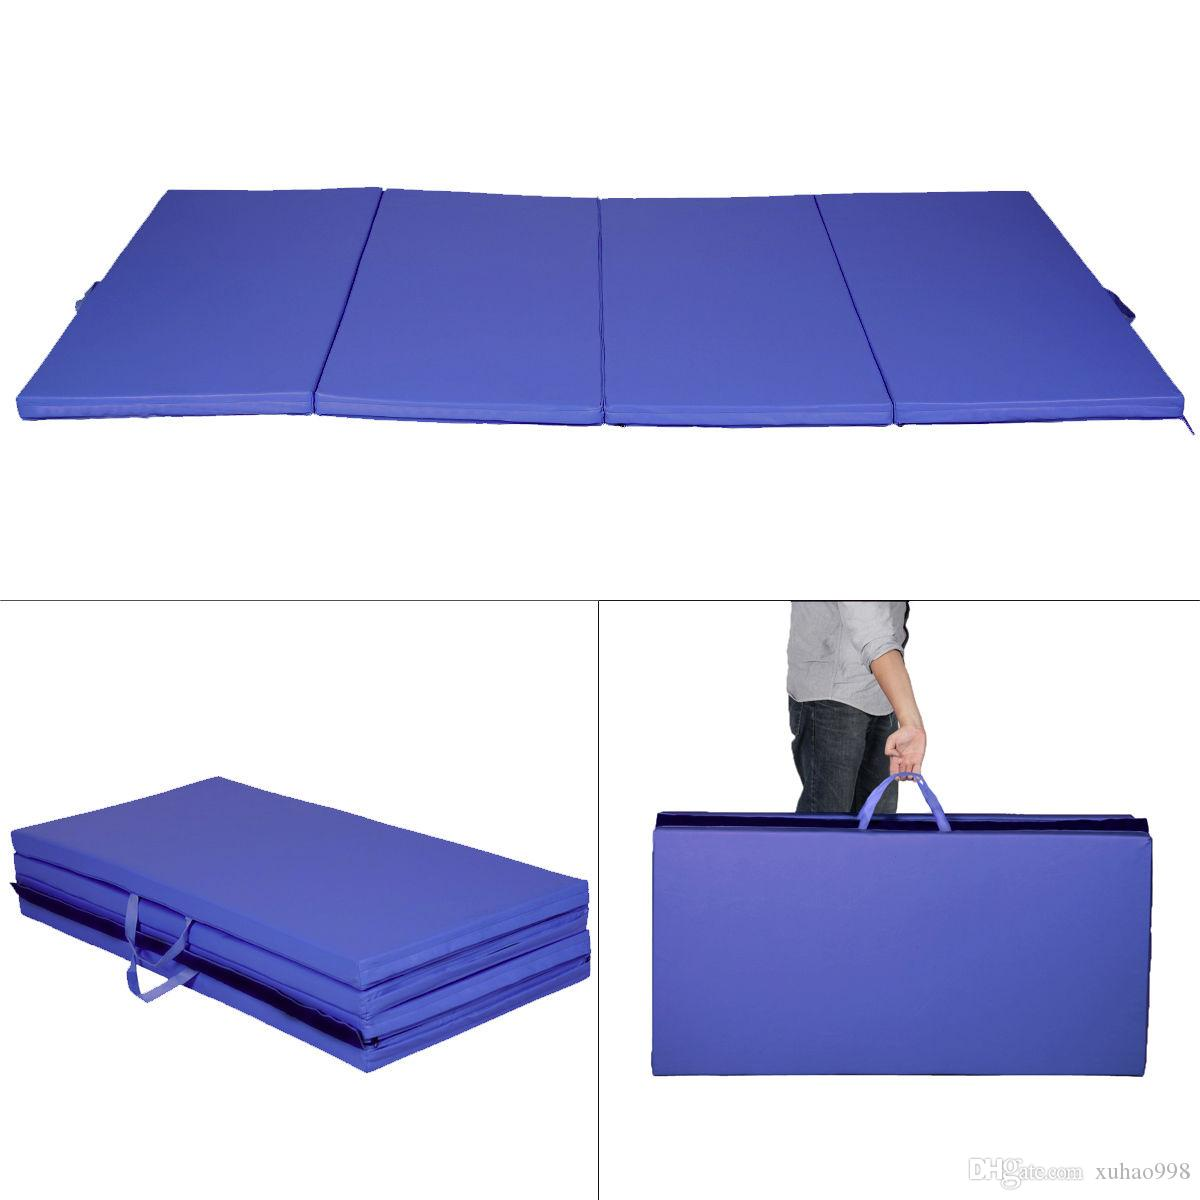 2019 New Blue 4 X8 X2 Gymnastics Mat Thick Folding Panel Gym Fitness Exercise Mat From Xuhao998 70 35 Dhgate Com